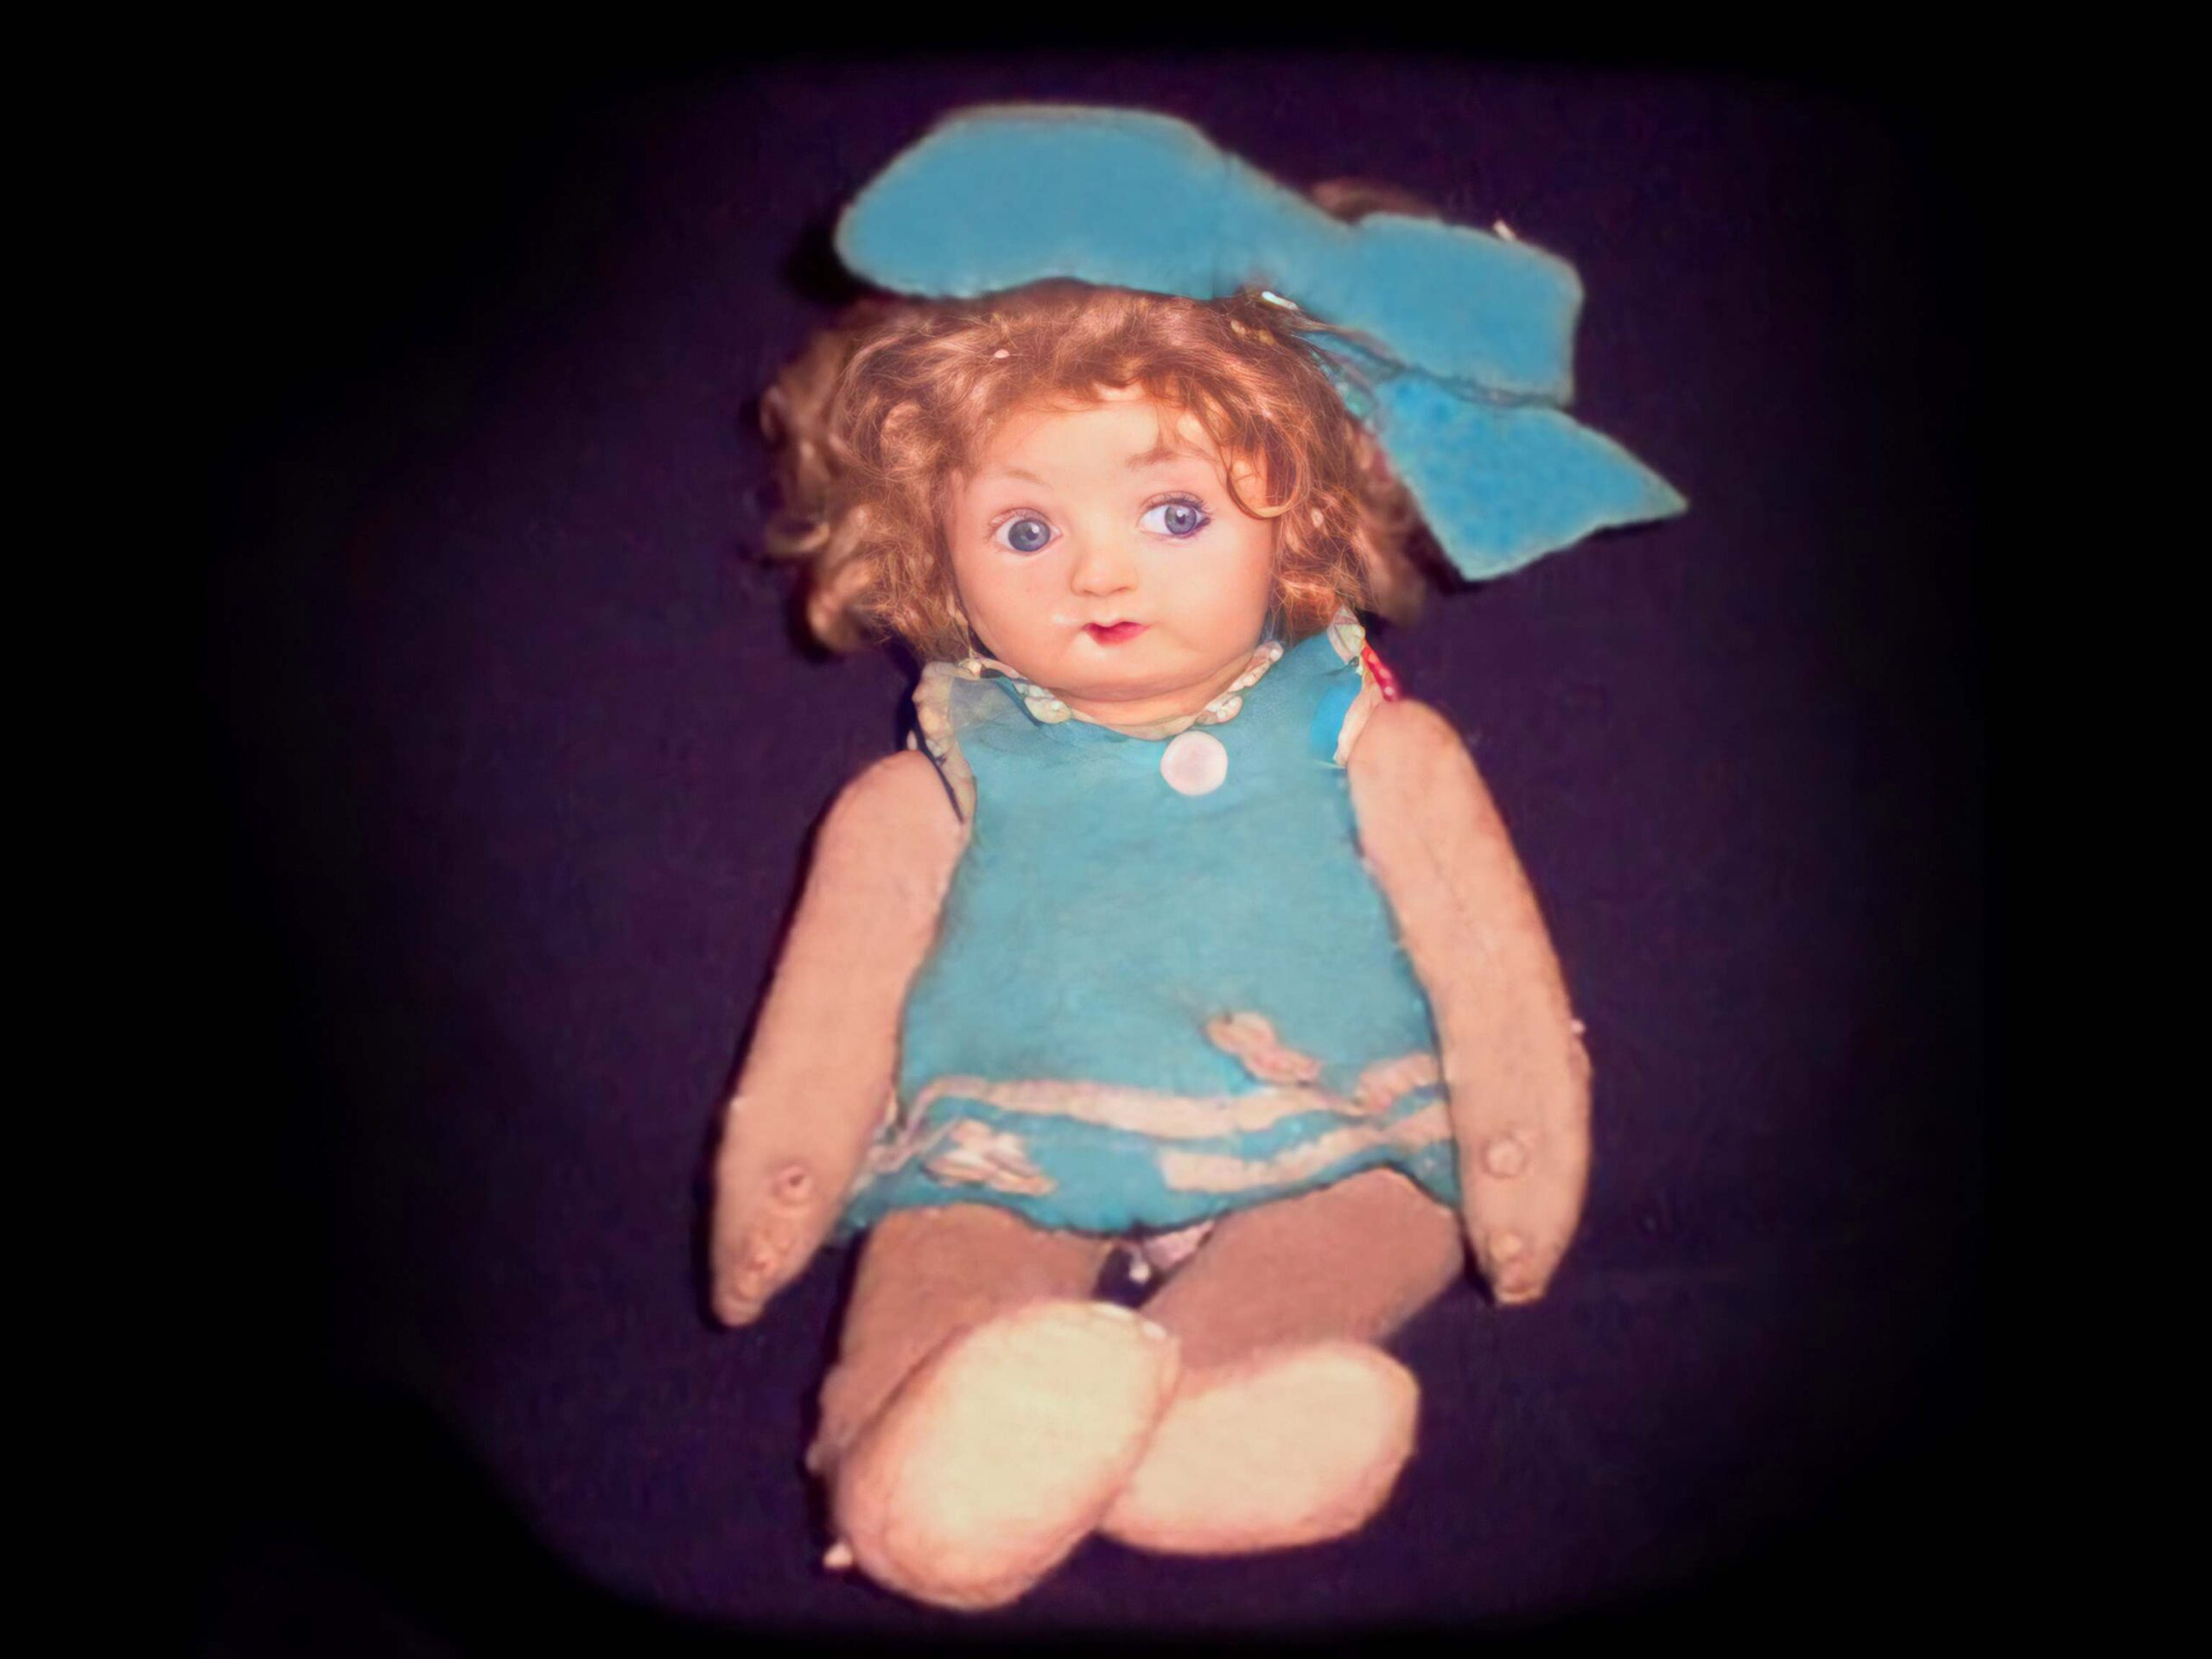 Pupa the Haunted Doll